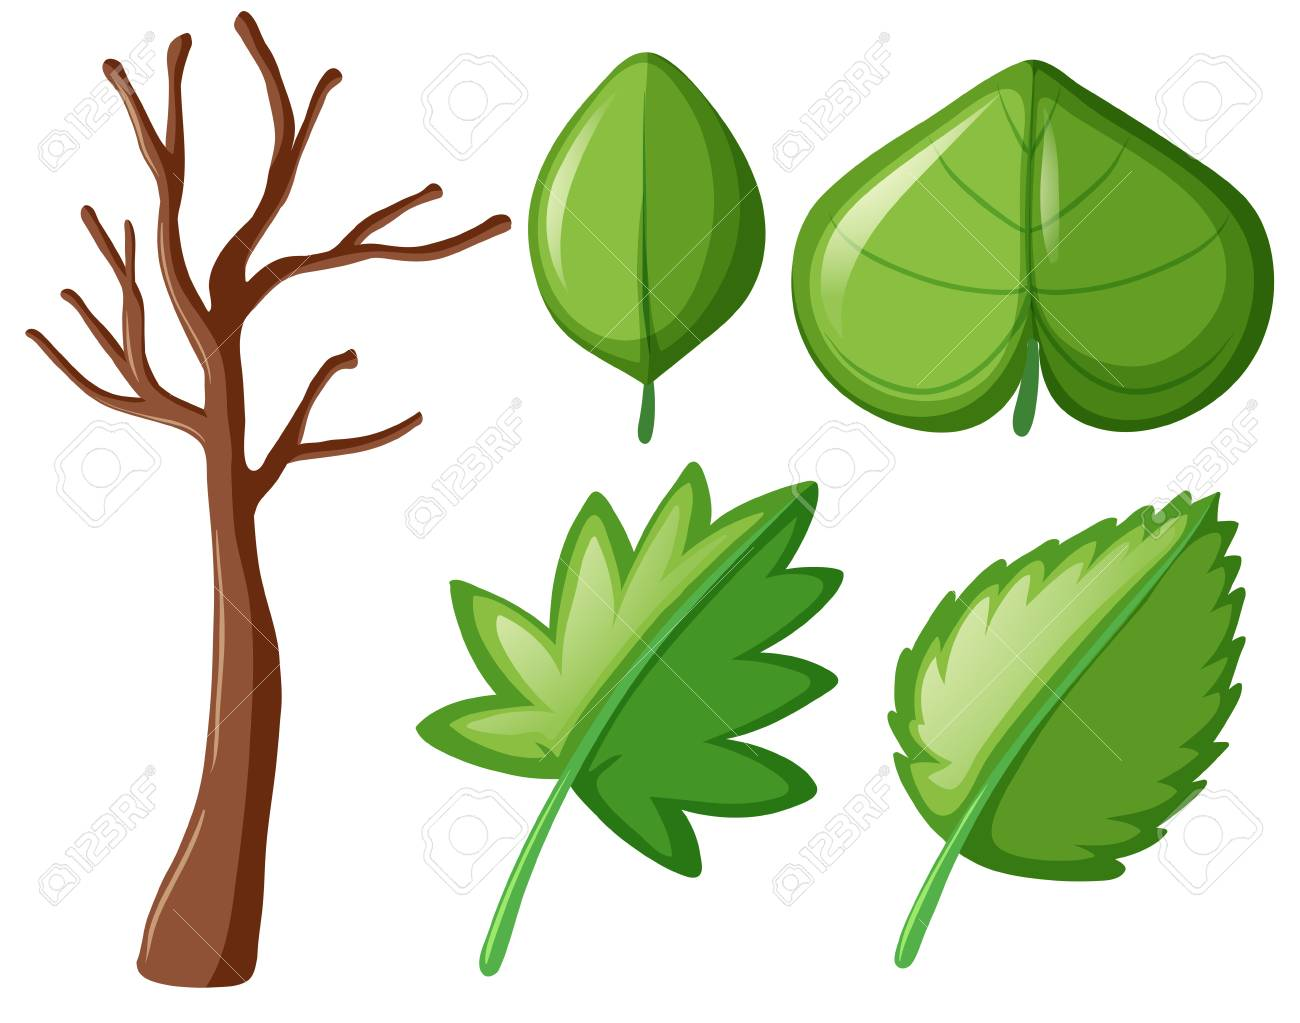 Different Shapes Of Green Leaves Illustration Royalty Free Cliparts.